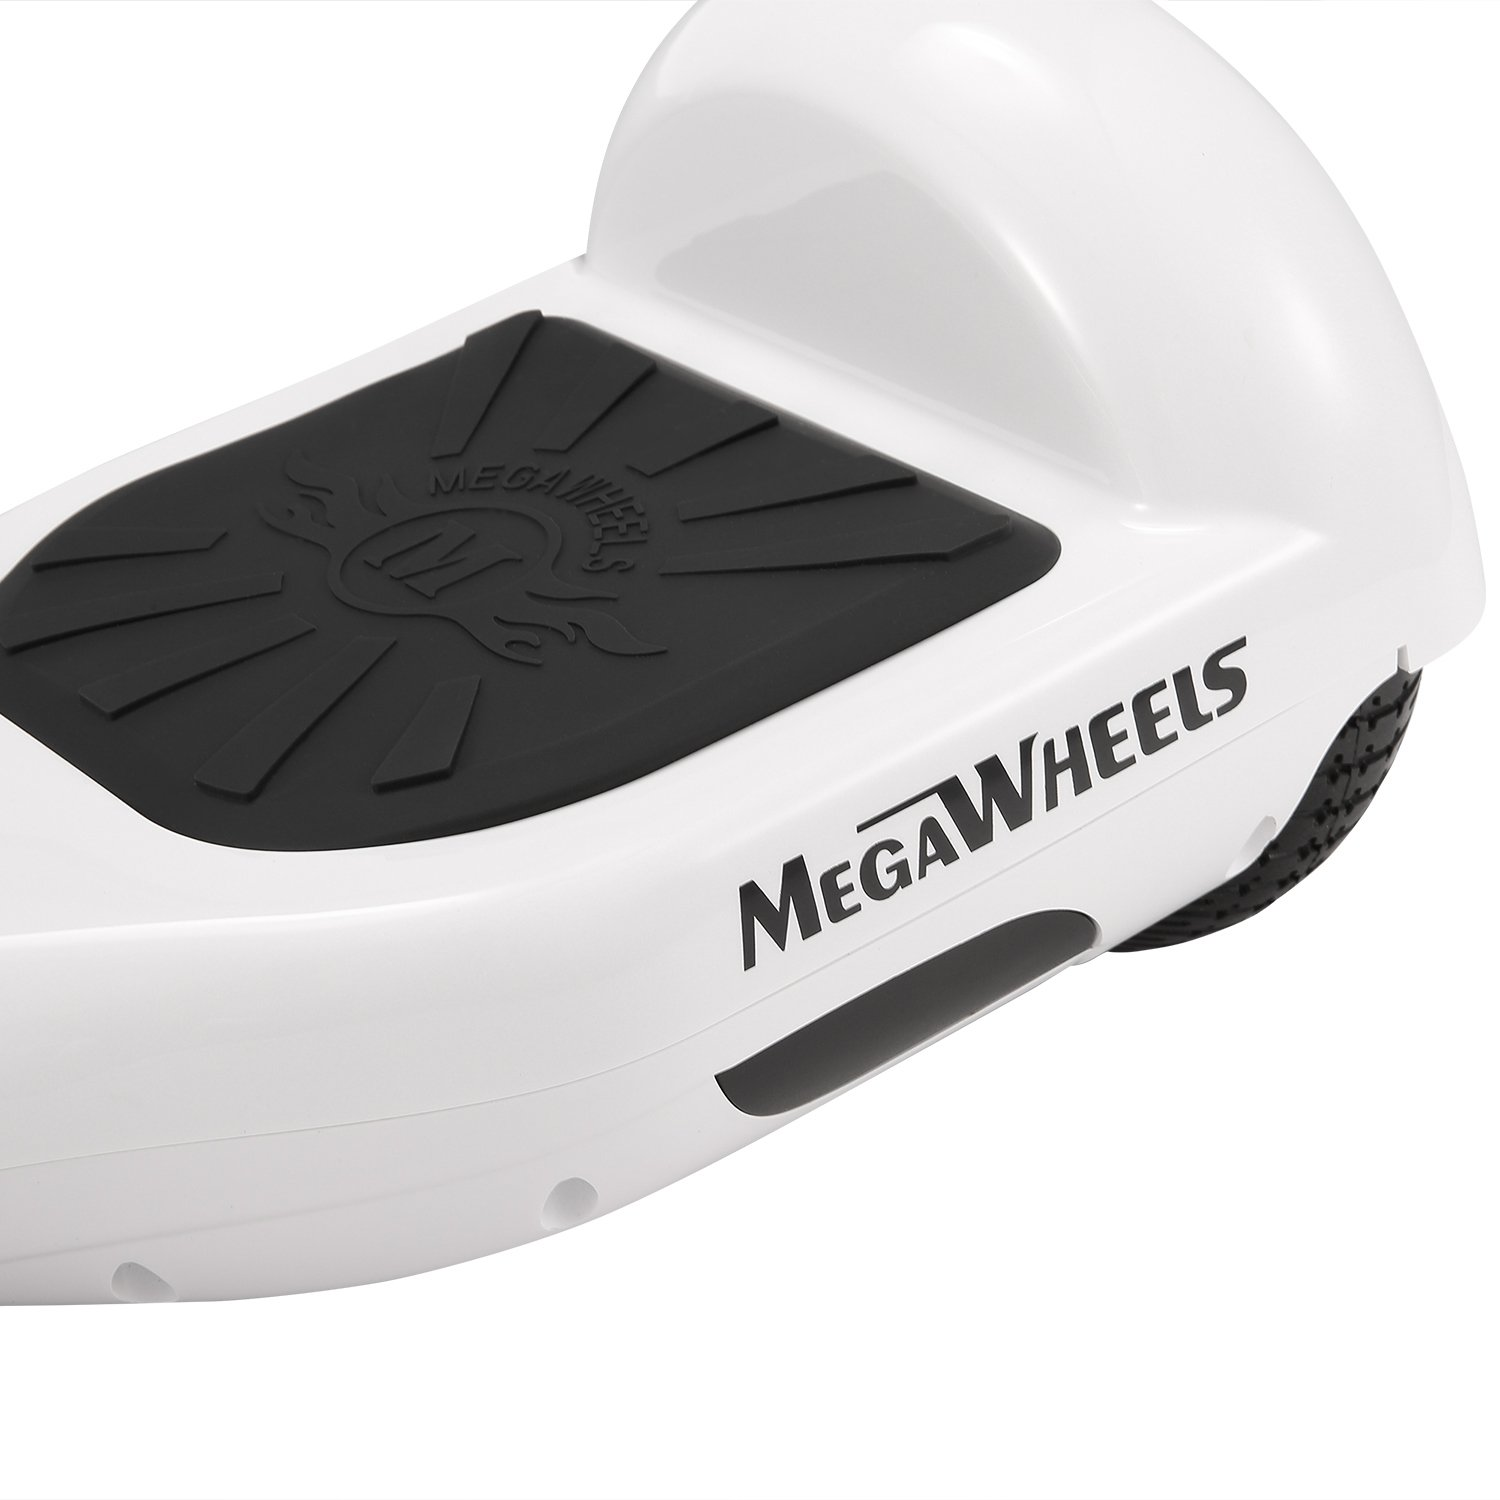 MegaWheels Hoverboard UL 2272 Certified Self-Balancing Smart Scooter (White) by MegaWheels (Image #4)